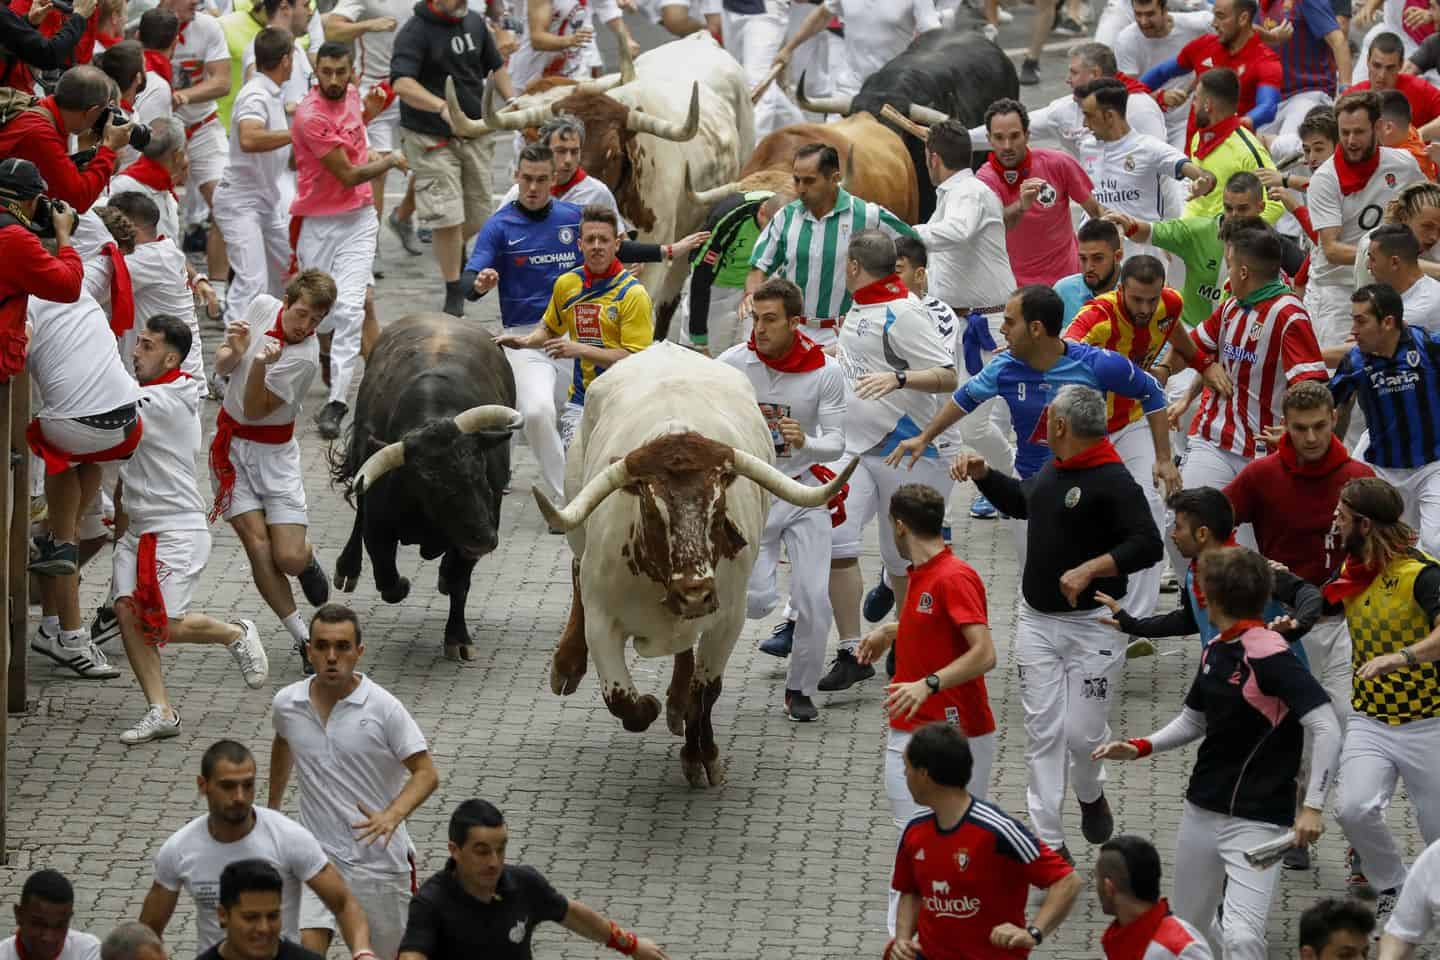 How to Survive the Pamplona Running with the Bulls In Spain